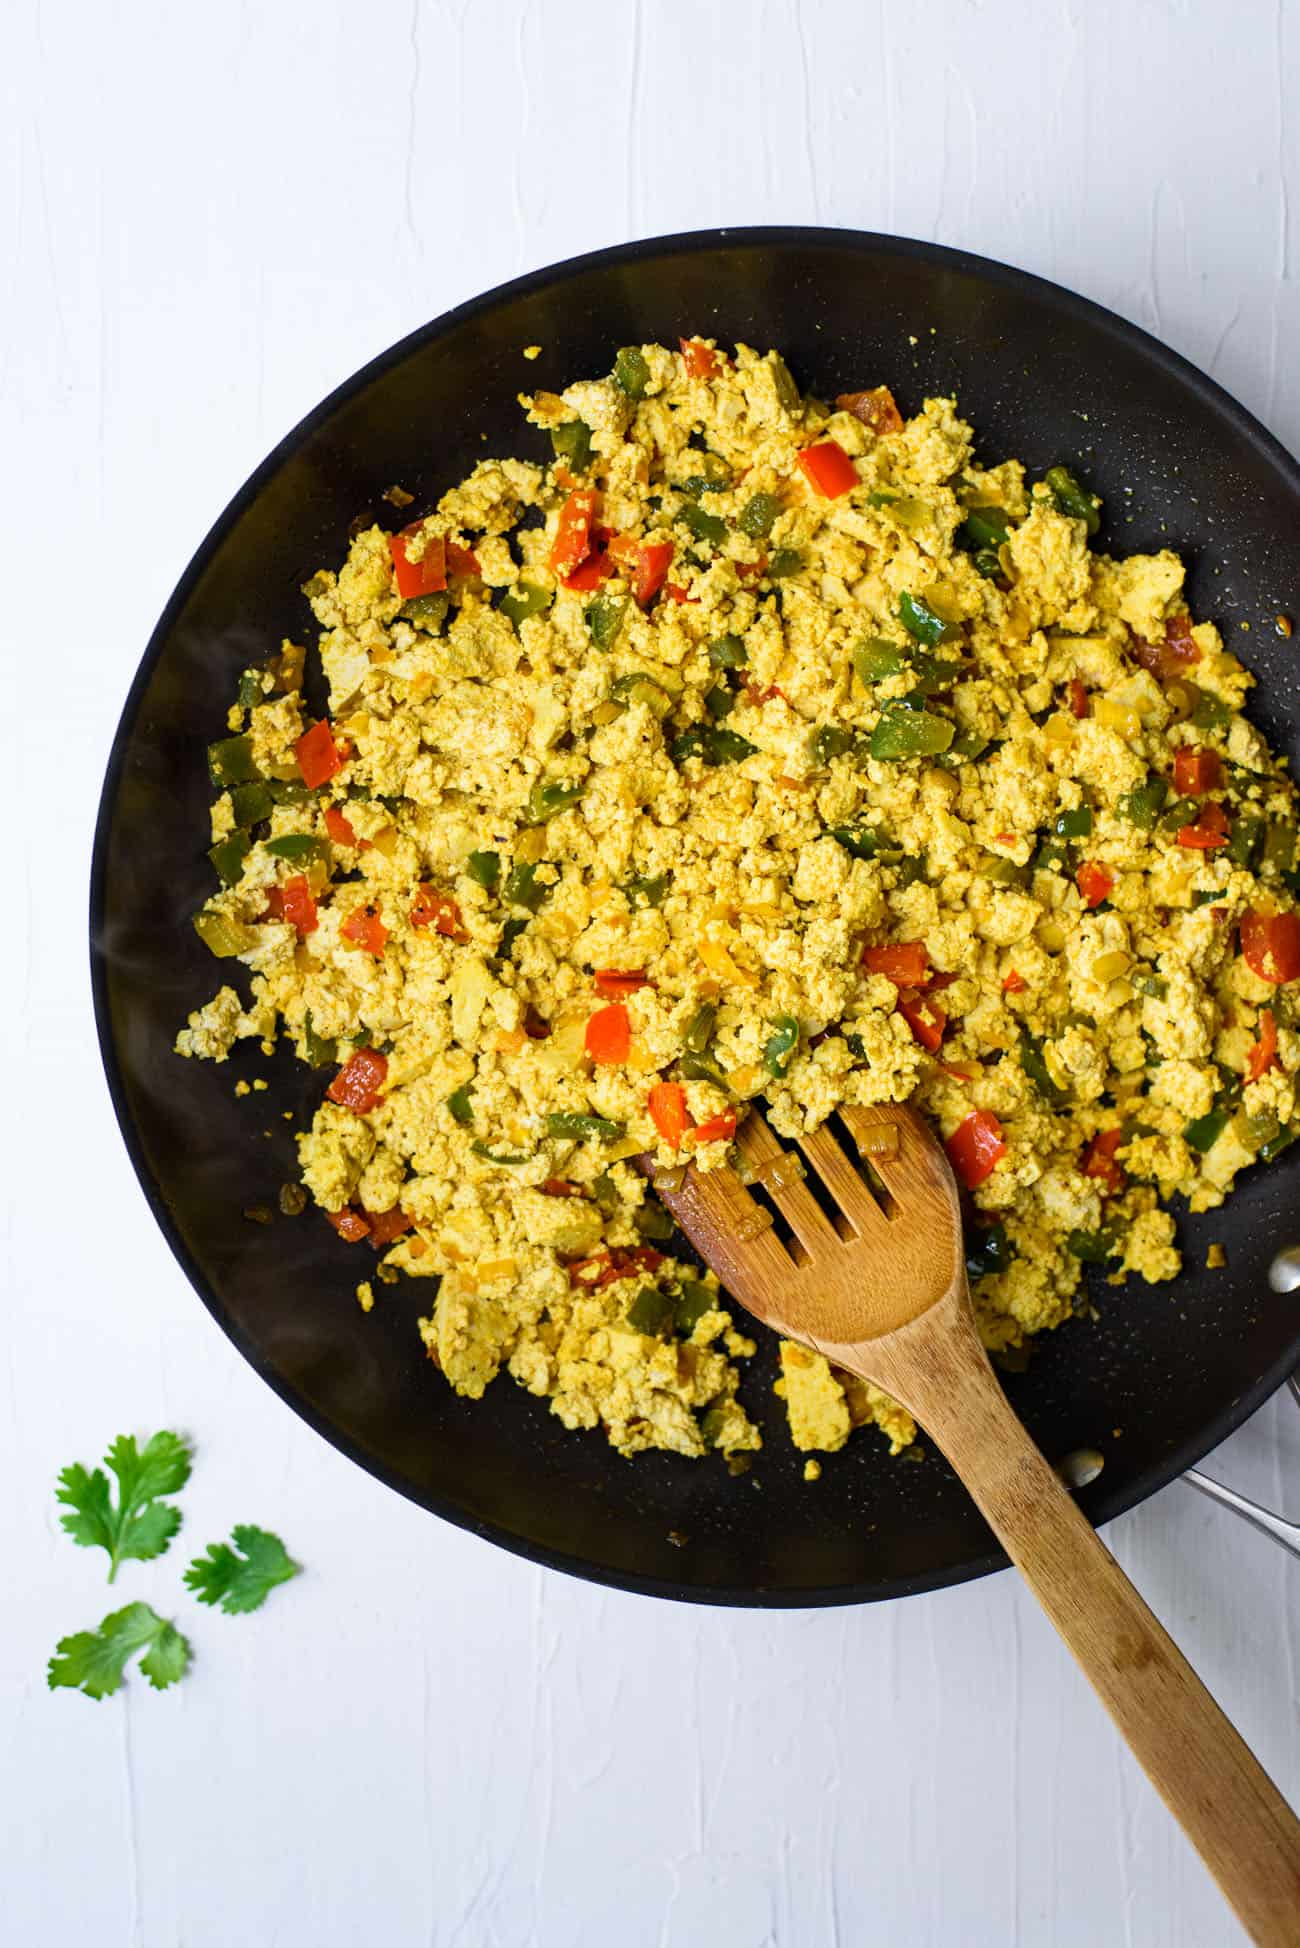 Scrambled tofu with turmeric, onions, and peppers in a non-stick skillet